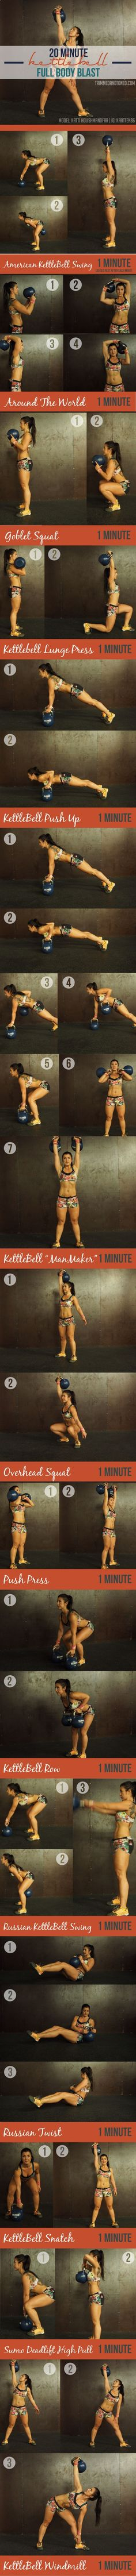 20 Minute Full Body Fat Loss Kettlebell Workout Circuit! | Posted By: NewHowToLoseBellyFat.com